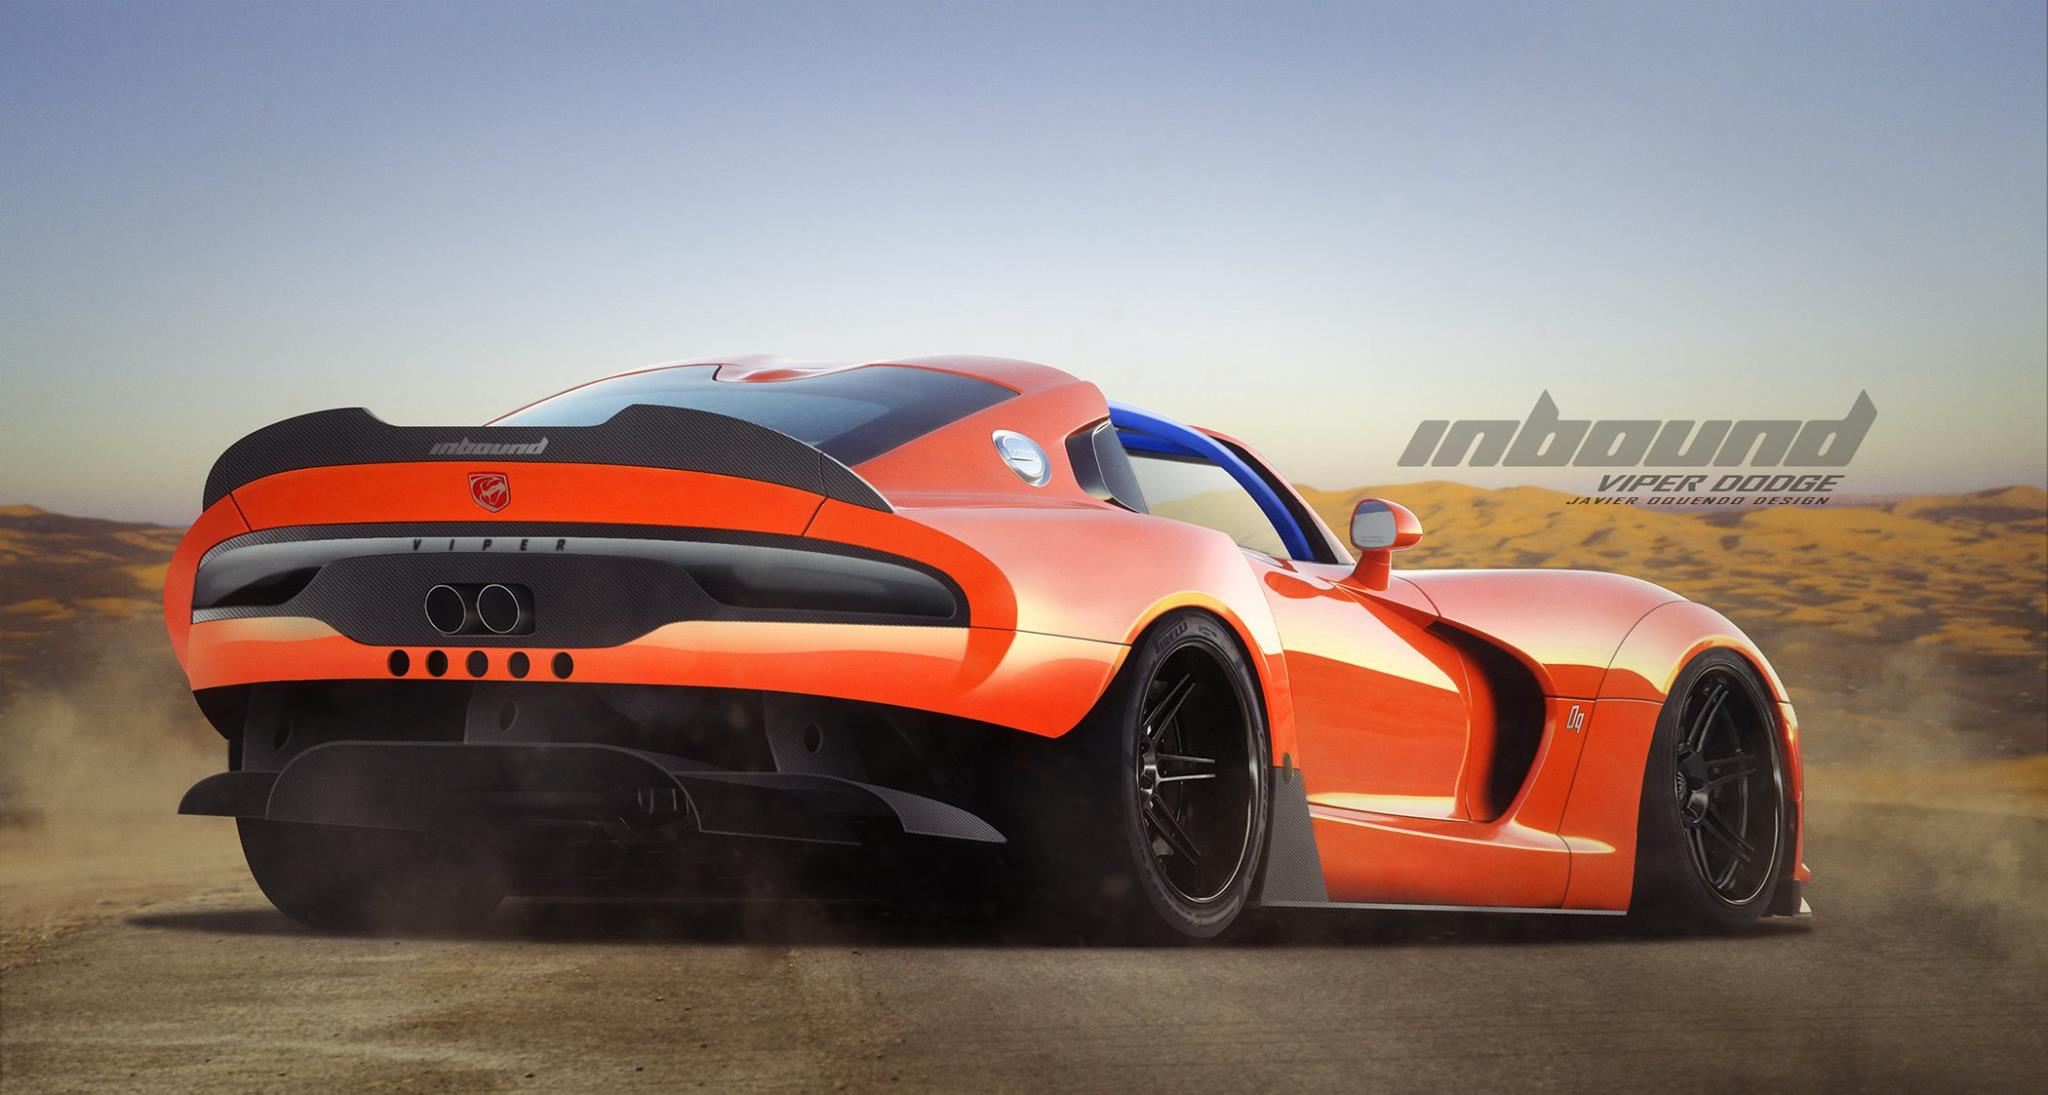 Targa top dodge viper racer would be an awesome swansong autoevolution 81 photos publicscrutiny Choice Image